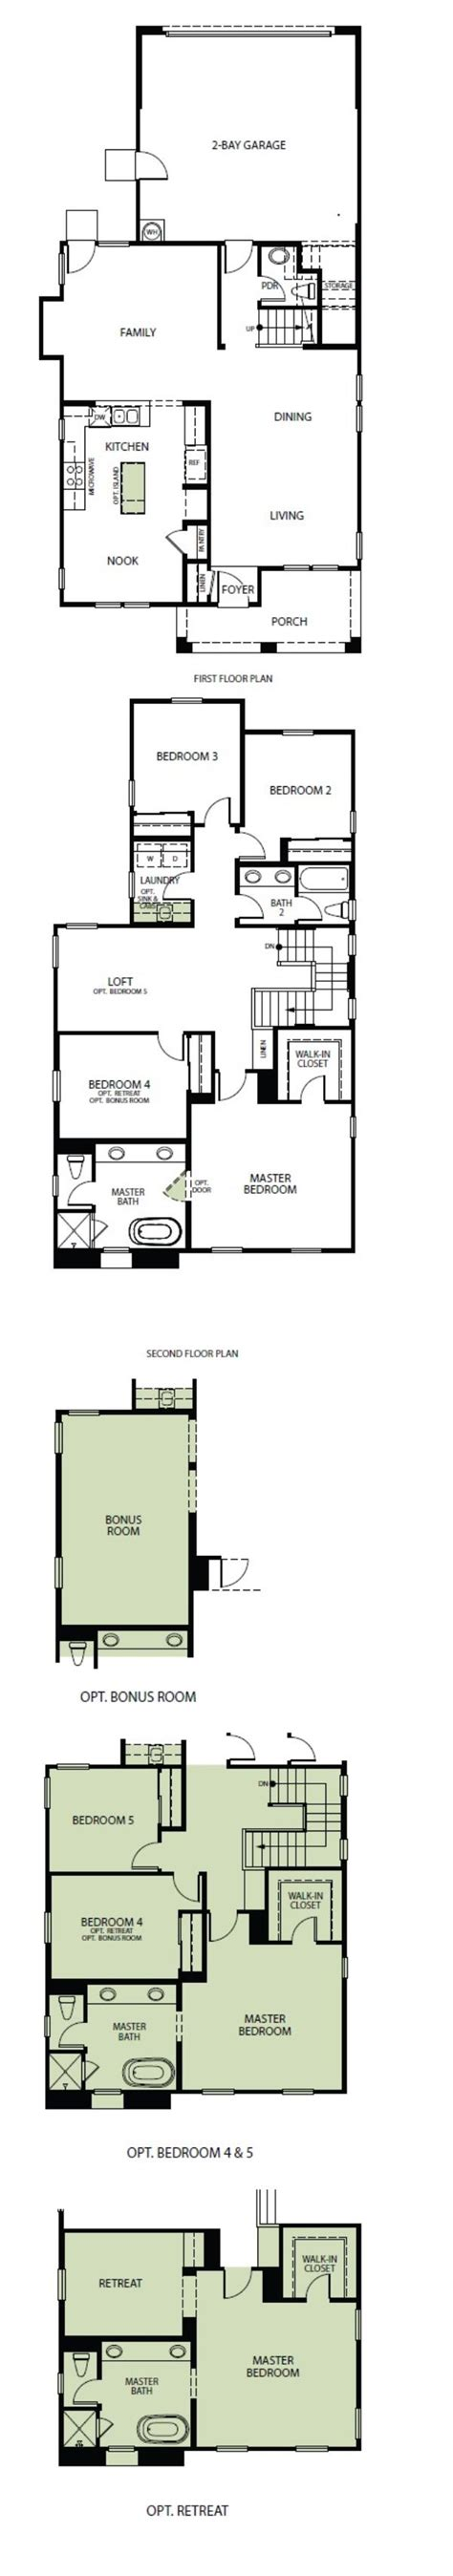 Woodside Homes Floor Plans by Plan 4 Model 3 Bedroom 2 5 Bath New Home In Sacramento Ca Woodside Homes At Natomas Meadows